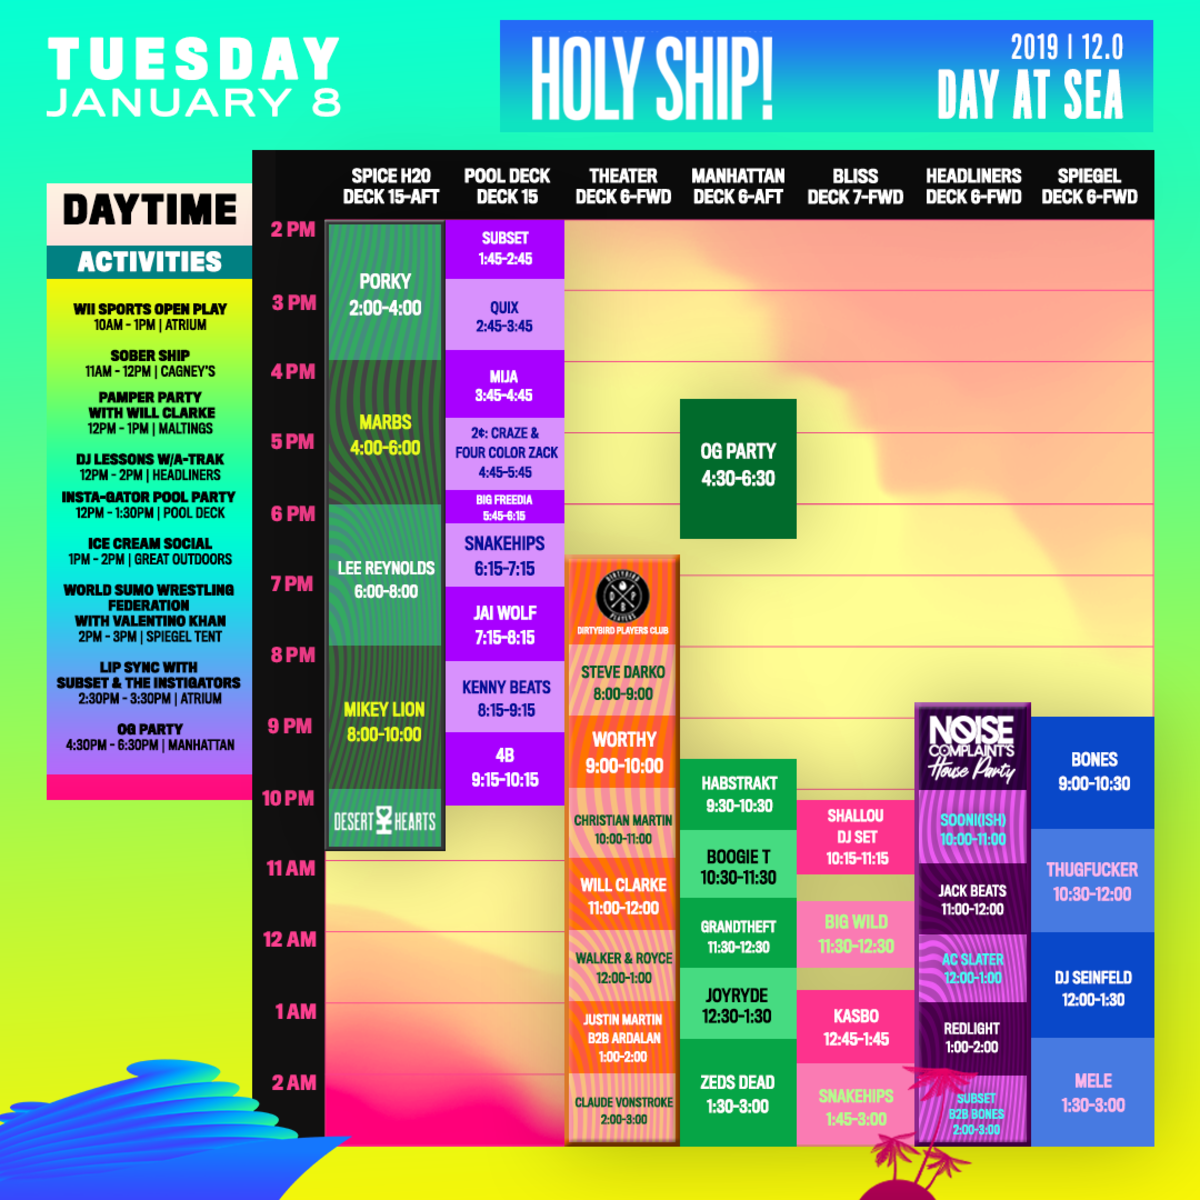 holy_ship_2019_lu_set_times_social_assets_day_4_12.0_1080x1080_r02